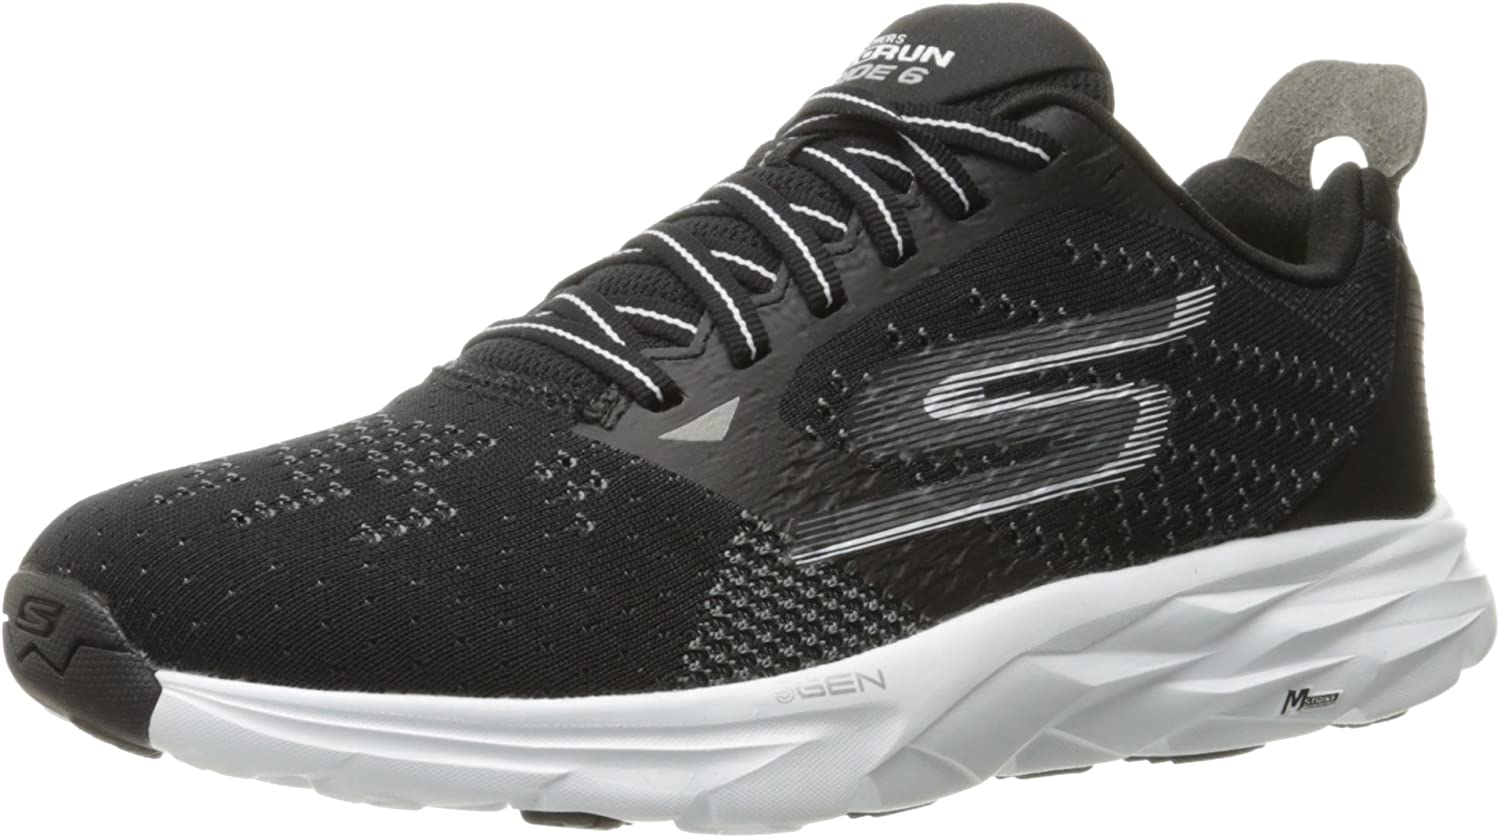 Skechers Womens Go Run Ride 6 Walking shoes